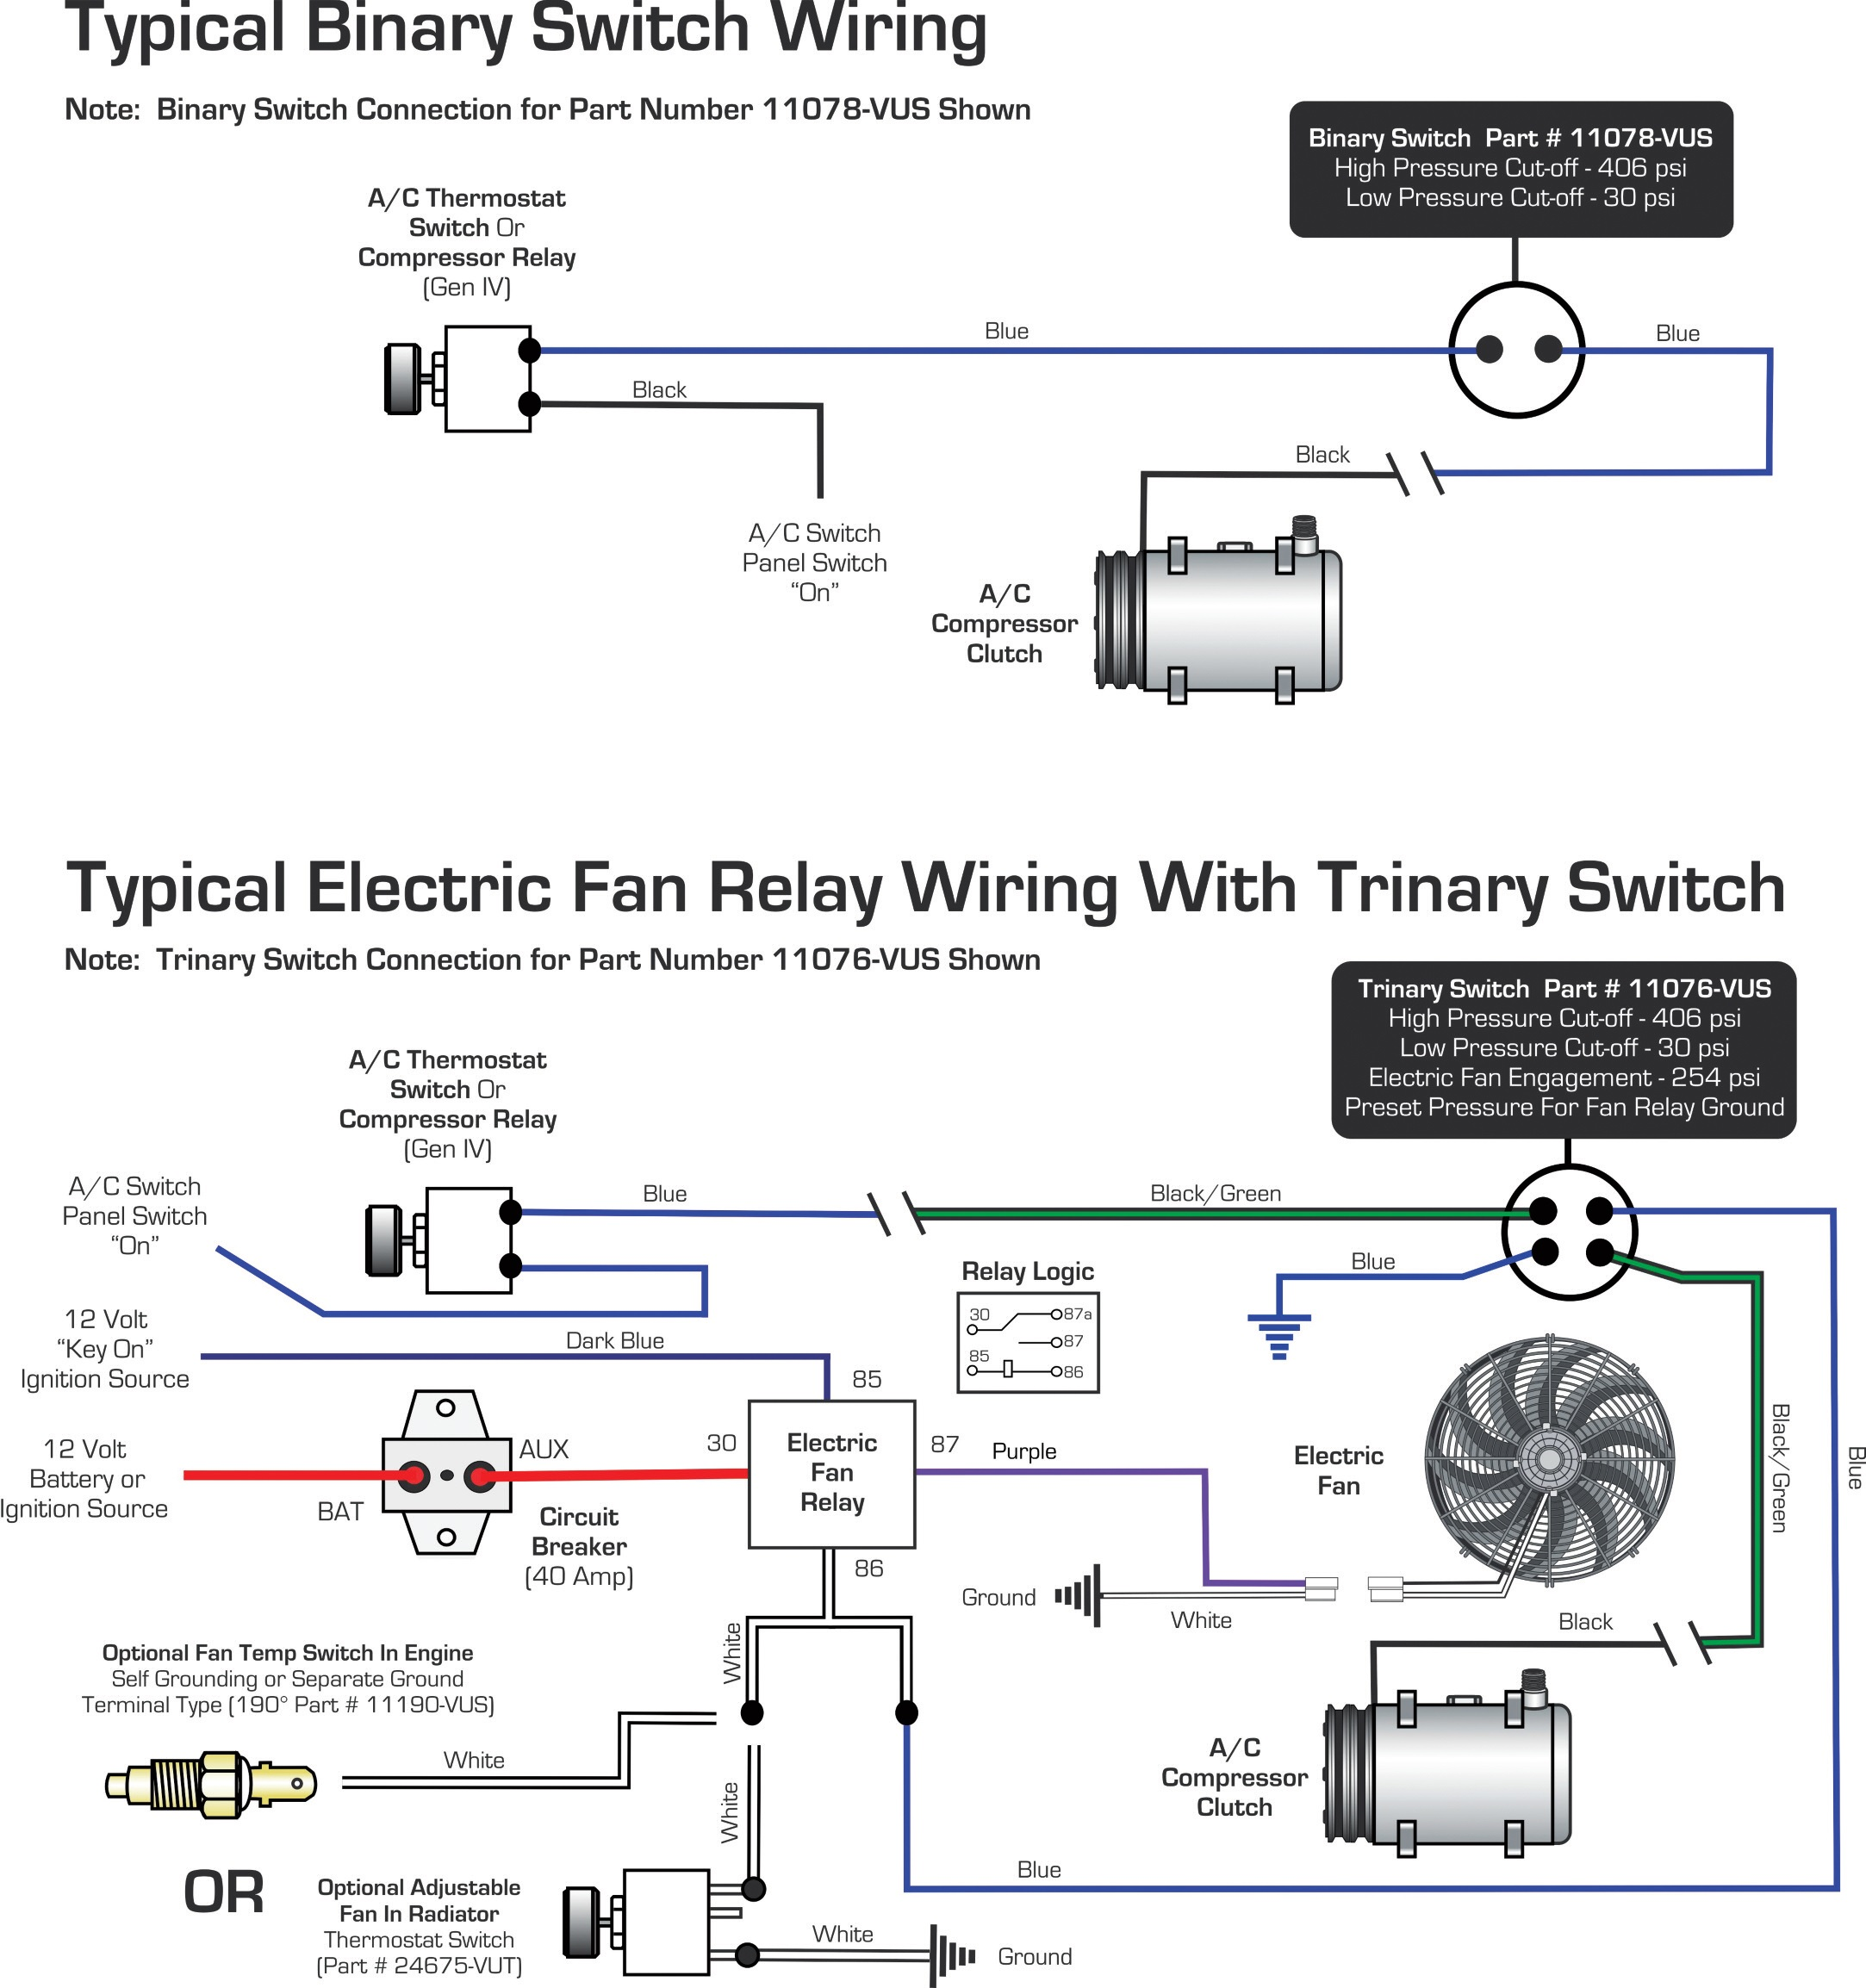 1 80 trinary wiring diagram trinary download wirning diagrams vintage air gen 4 wiring diagram at virtualis.co